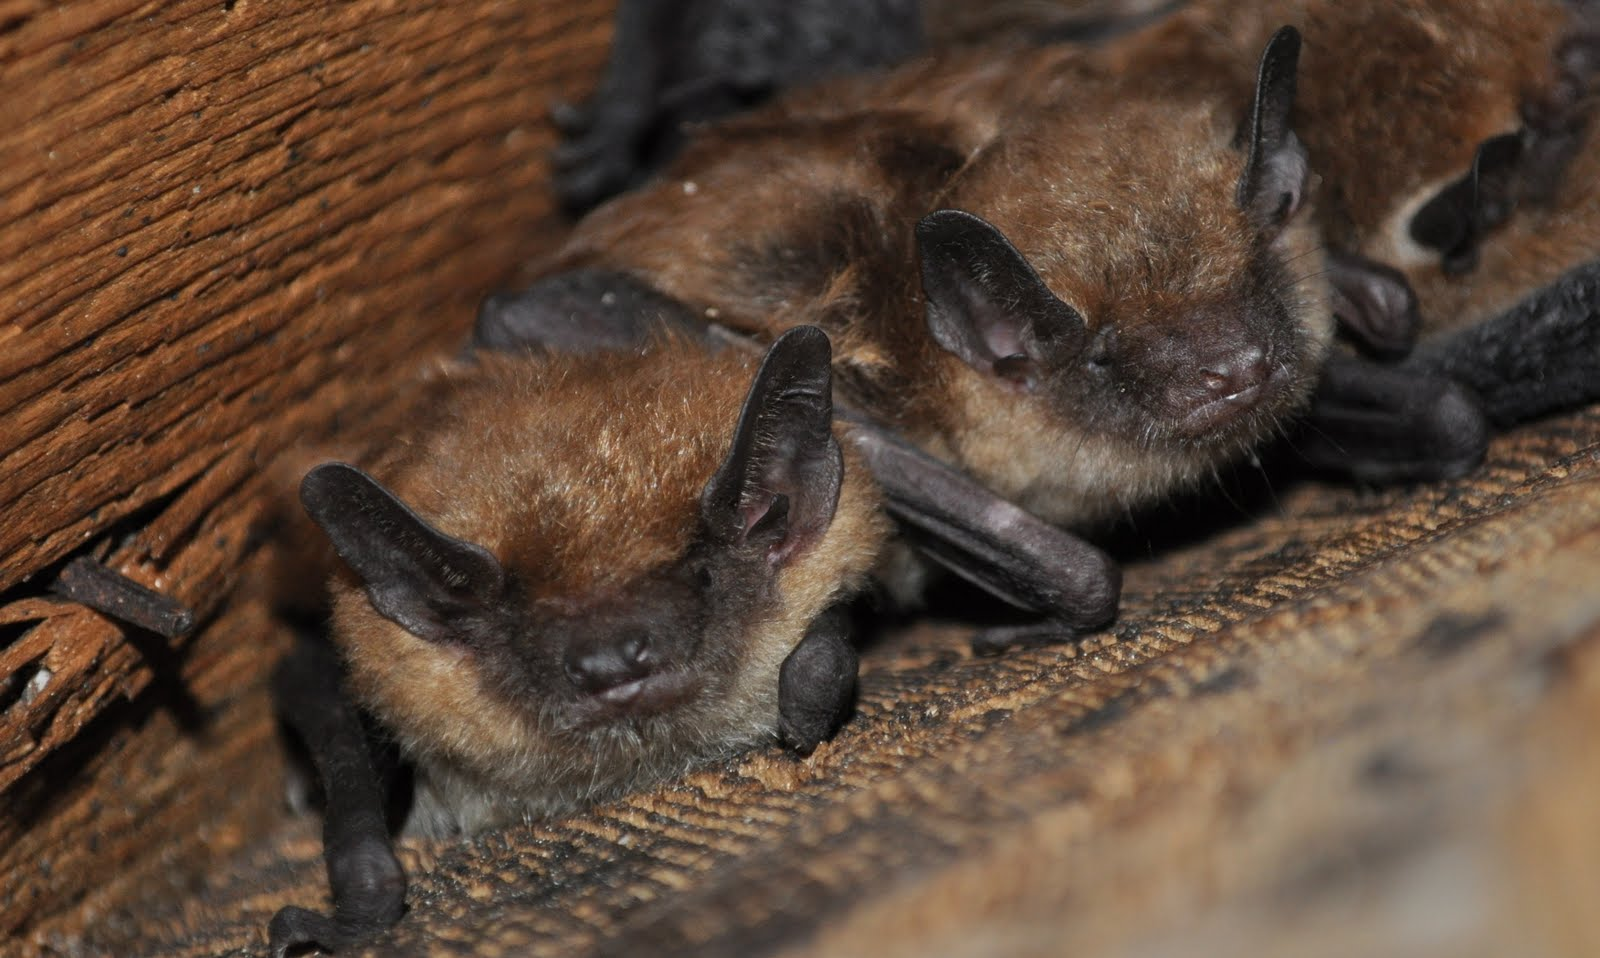 how to get rid of bats in house